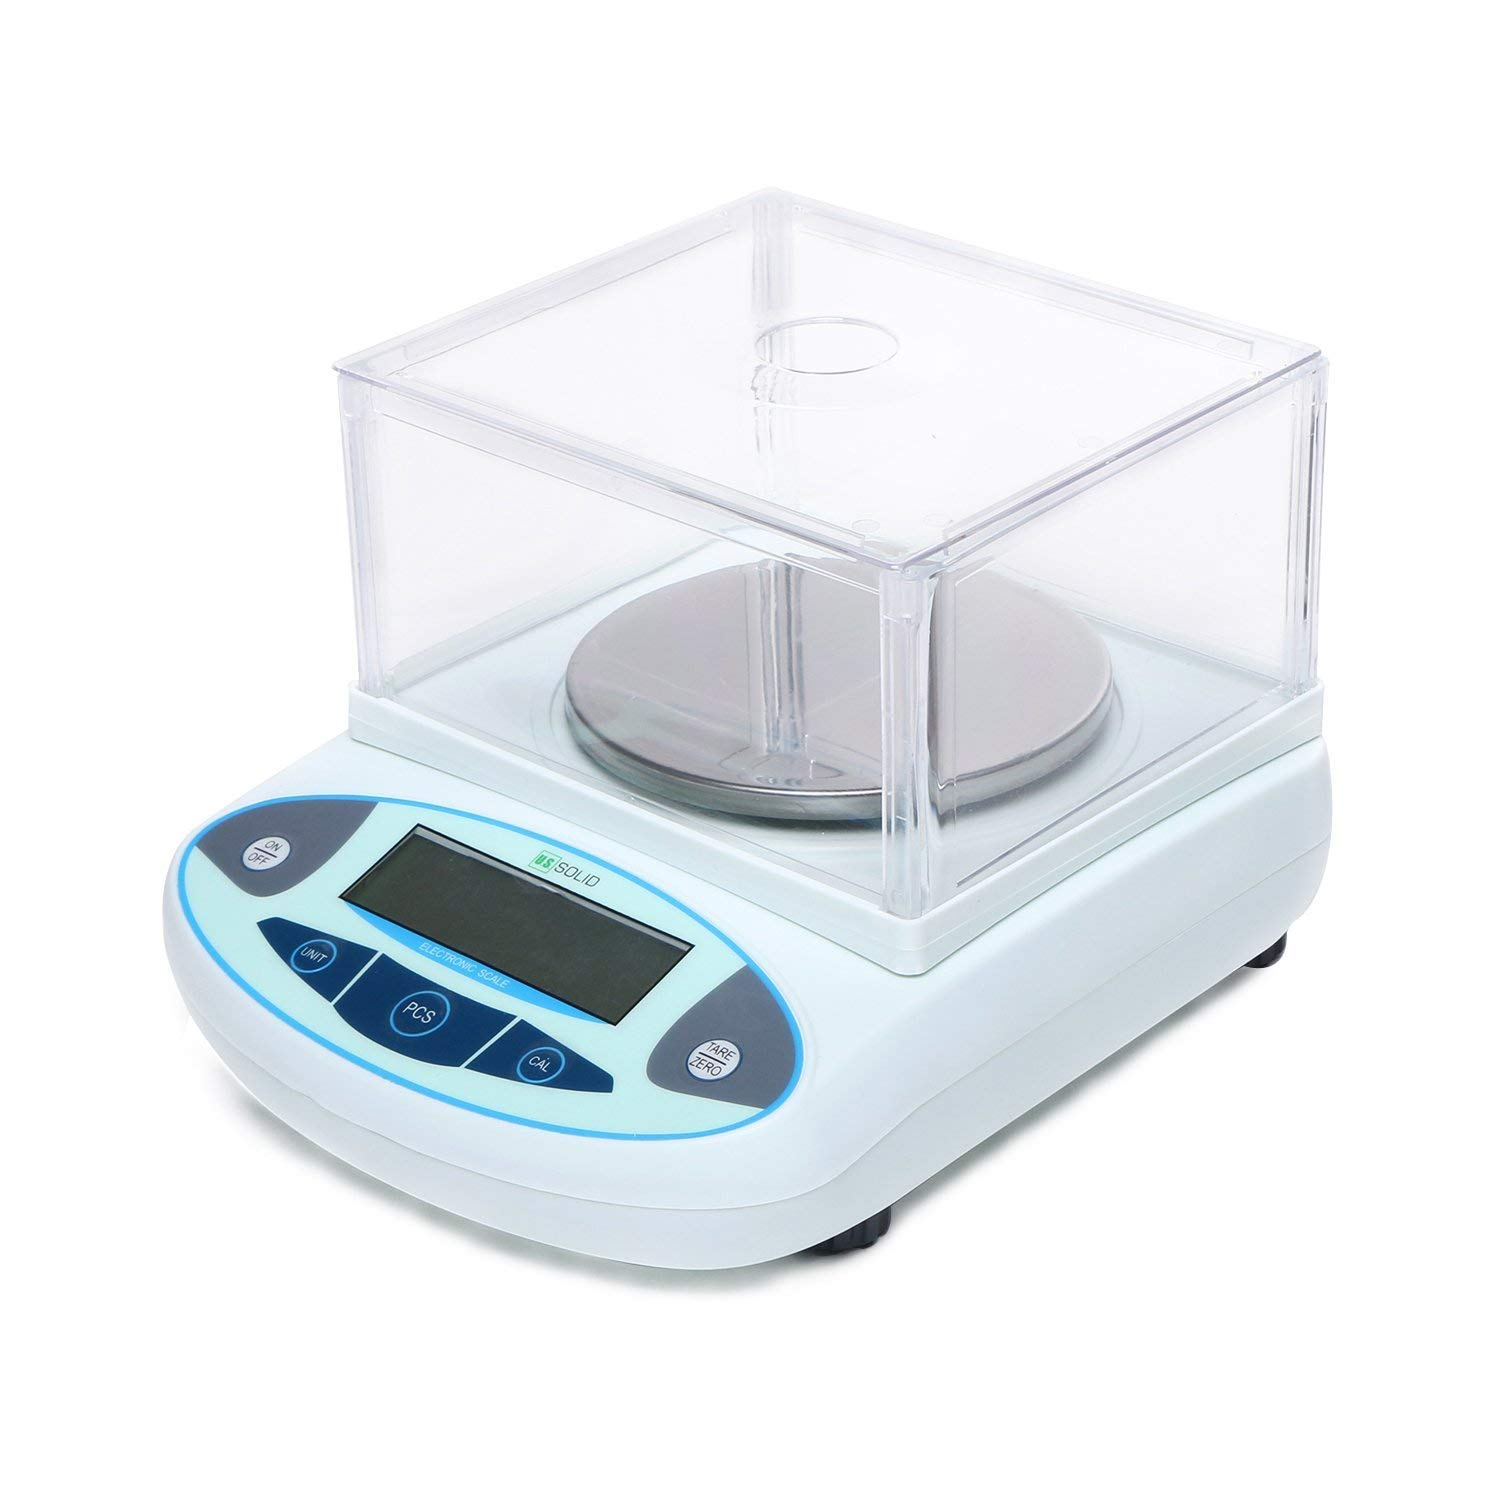 U.S. Solid Digital Analytical Balance Electronic Lab Scale 0.01 g LCD (3000g, 0.01g)